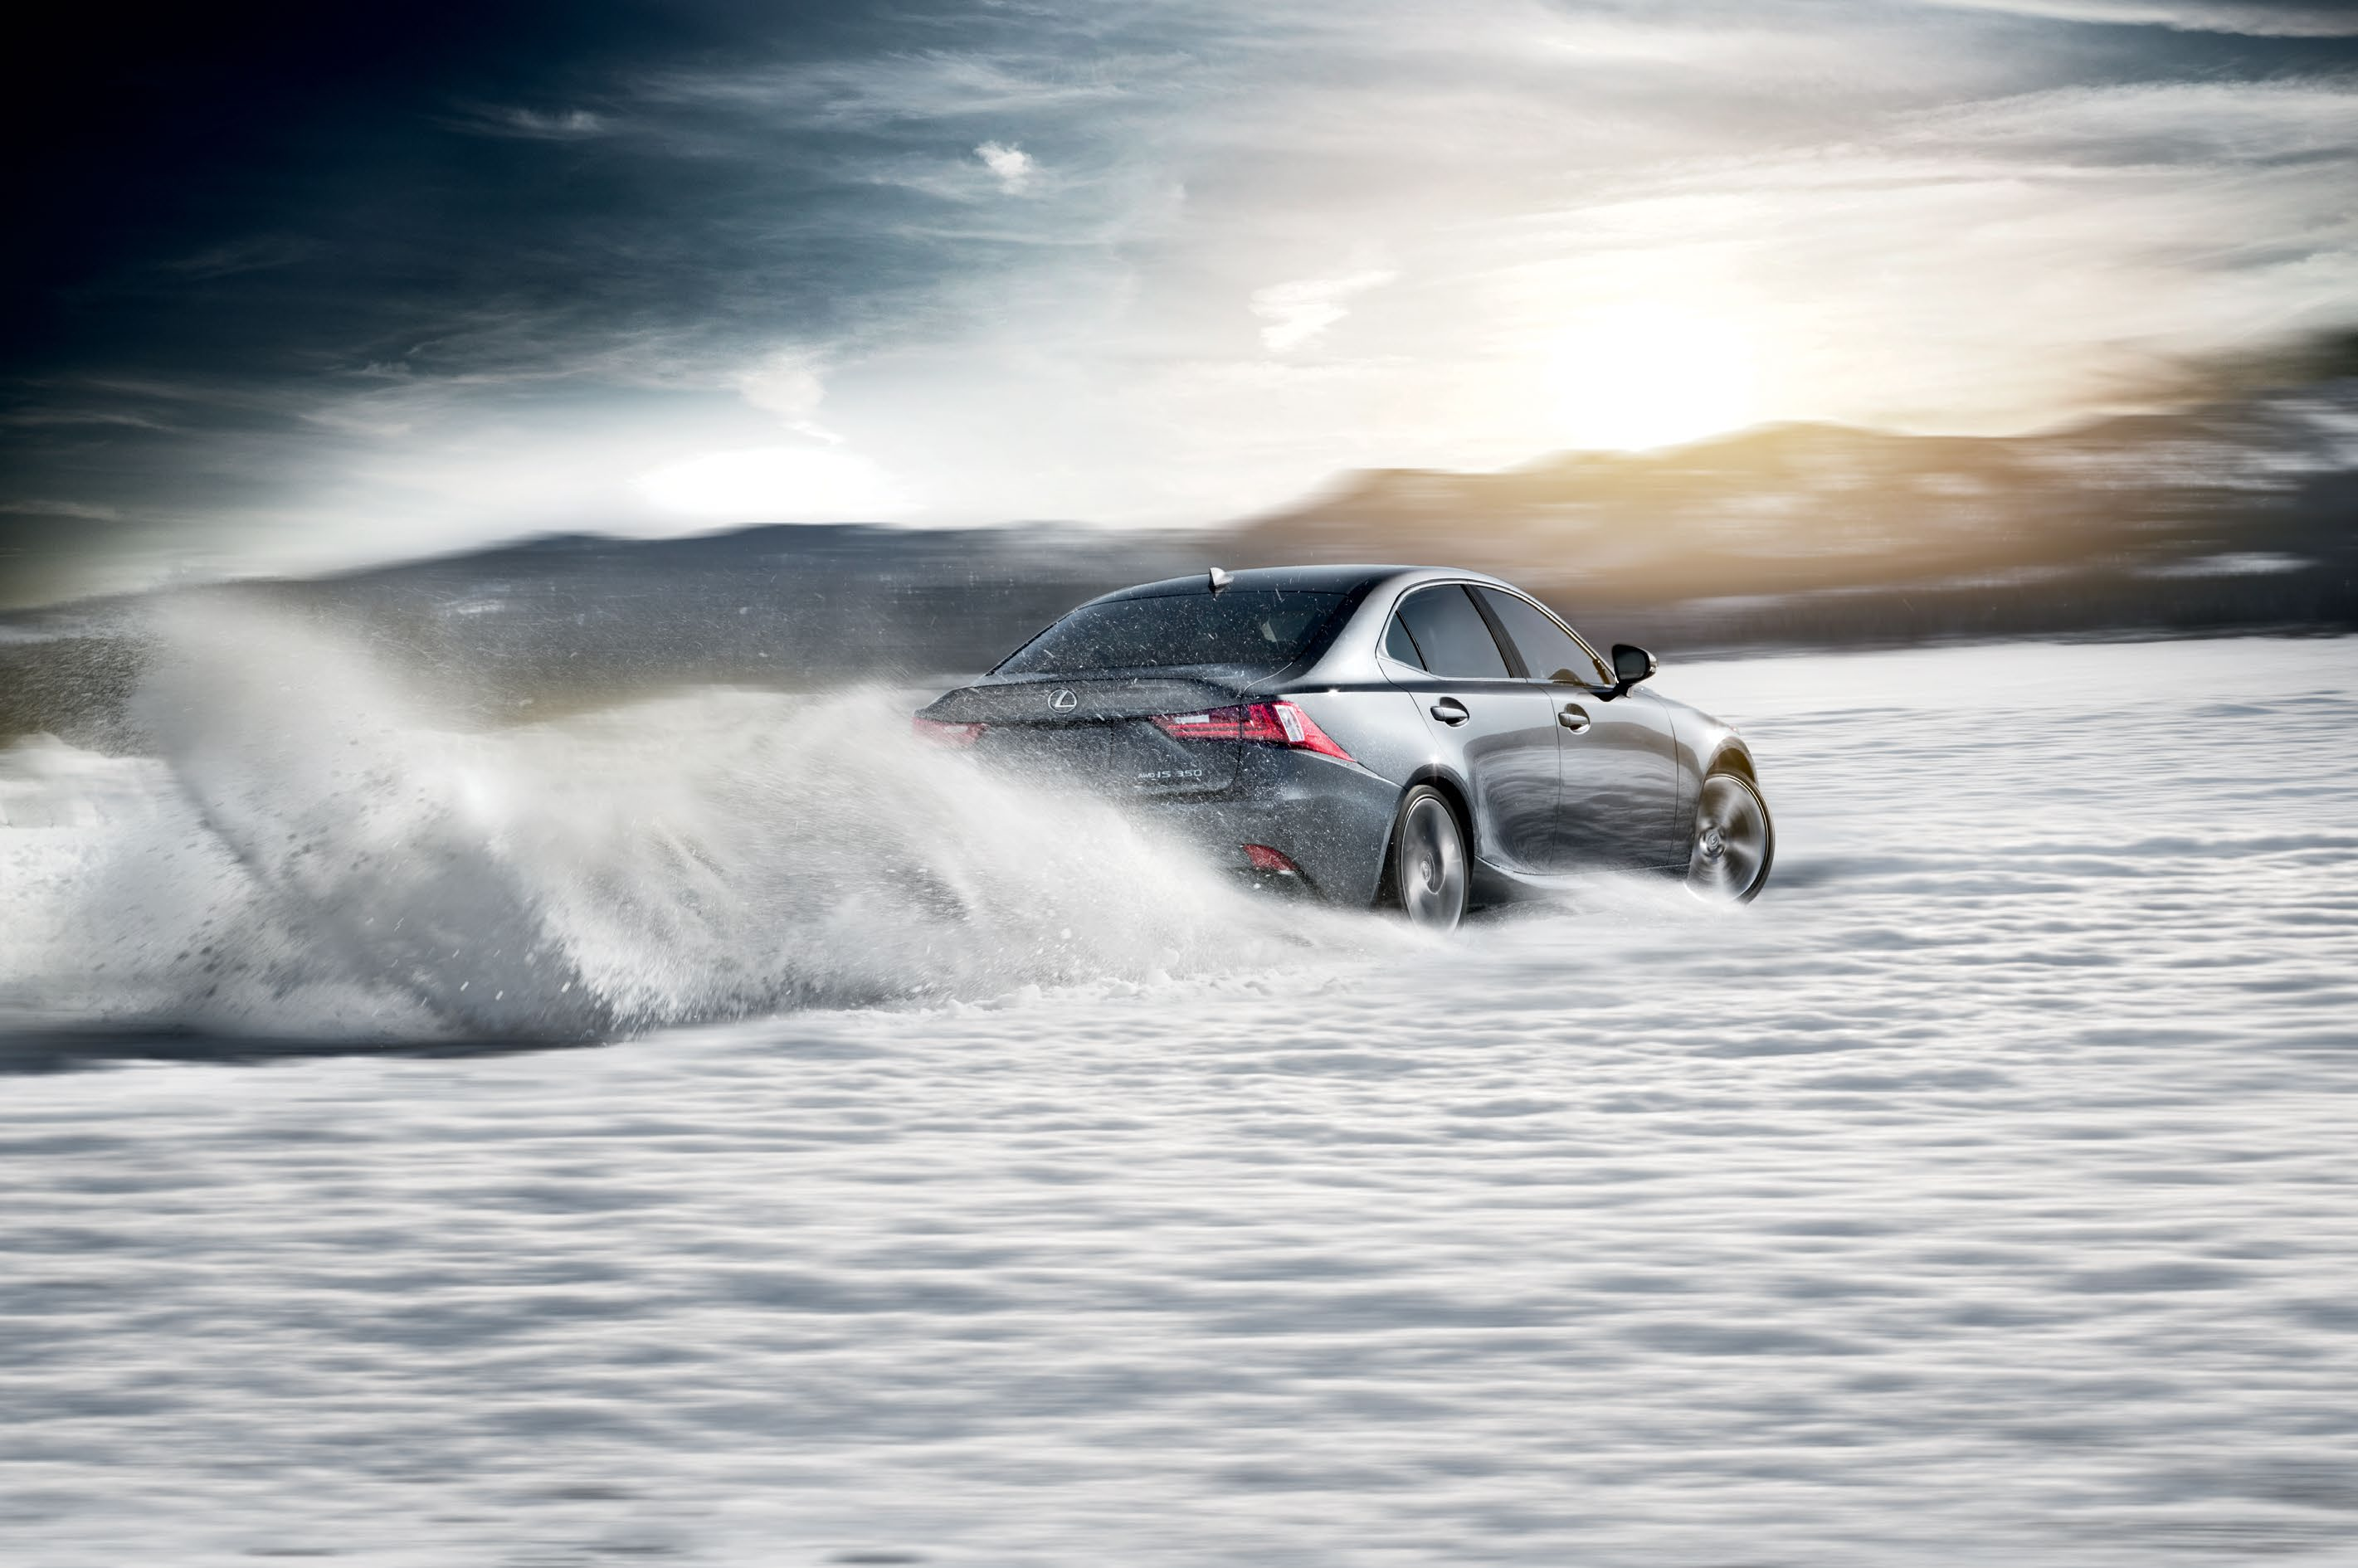 30/70, available all-wheel drive can provide enhanced traction and control on a wide range of road